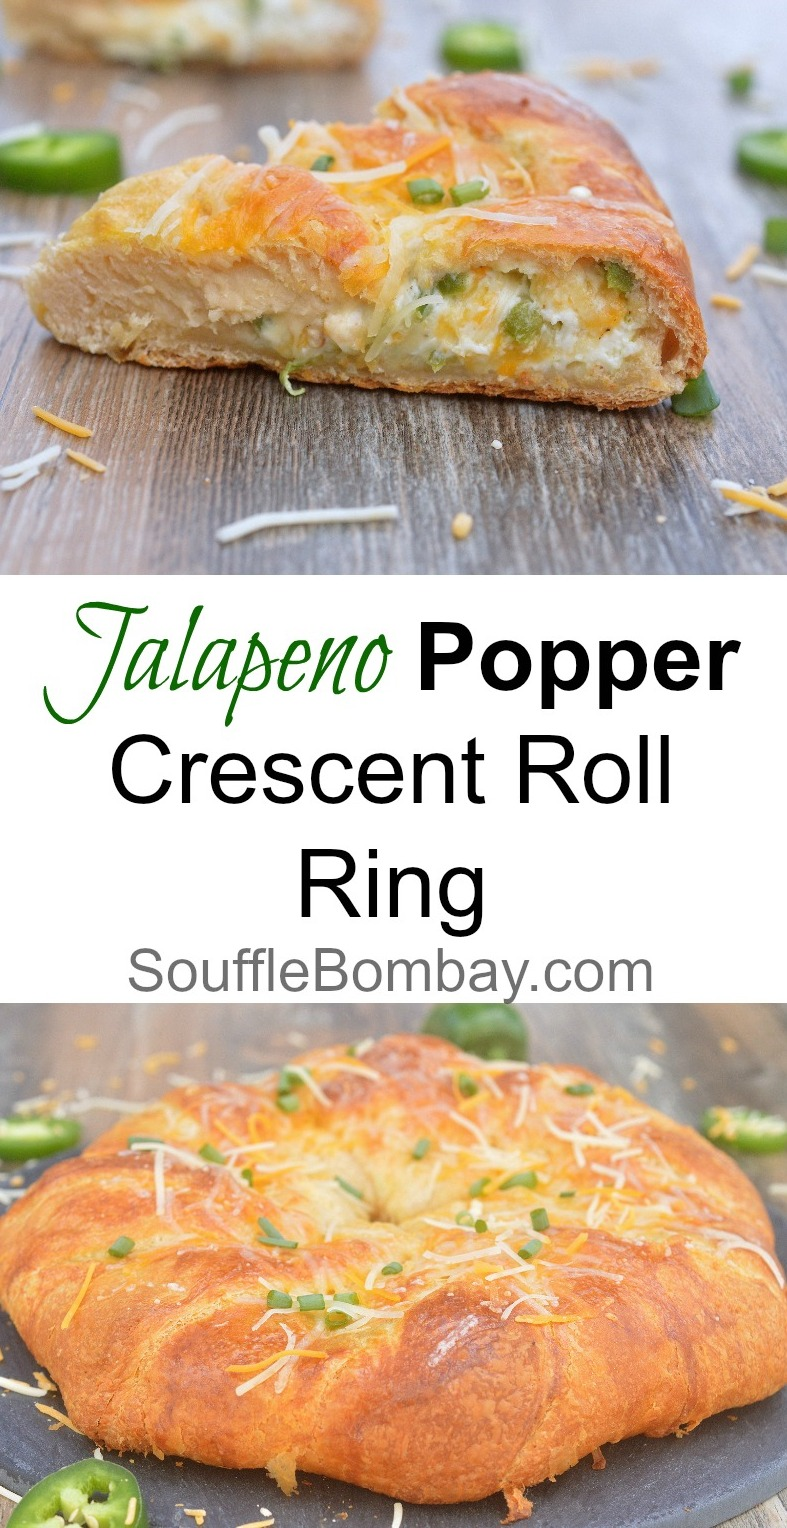 Jalapeno Popper Crescent Roll Ring - Yum!